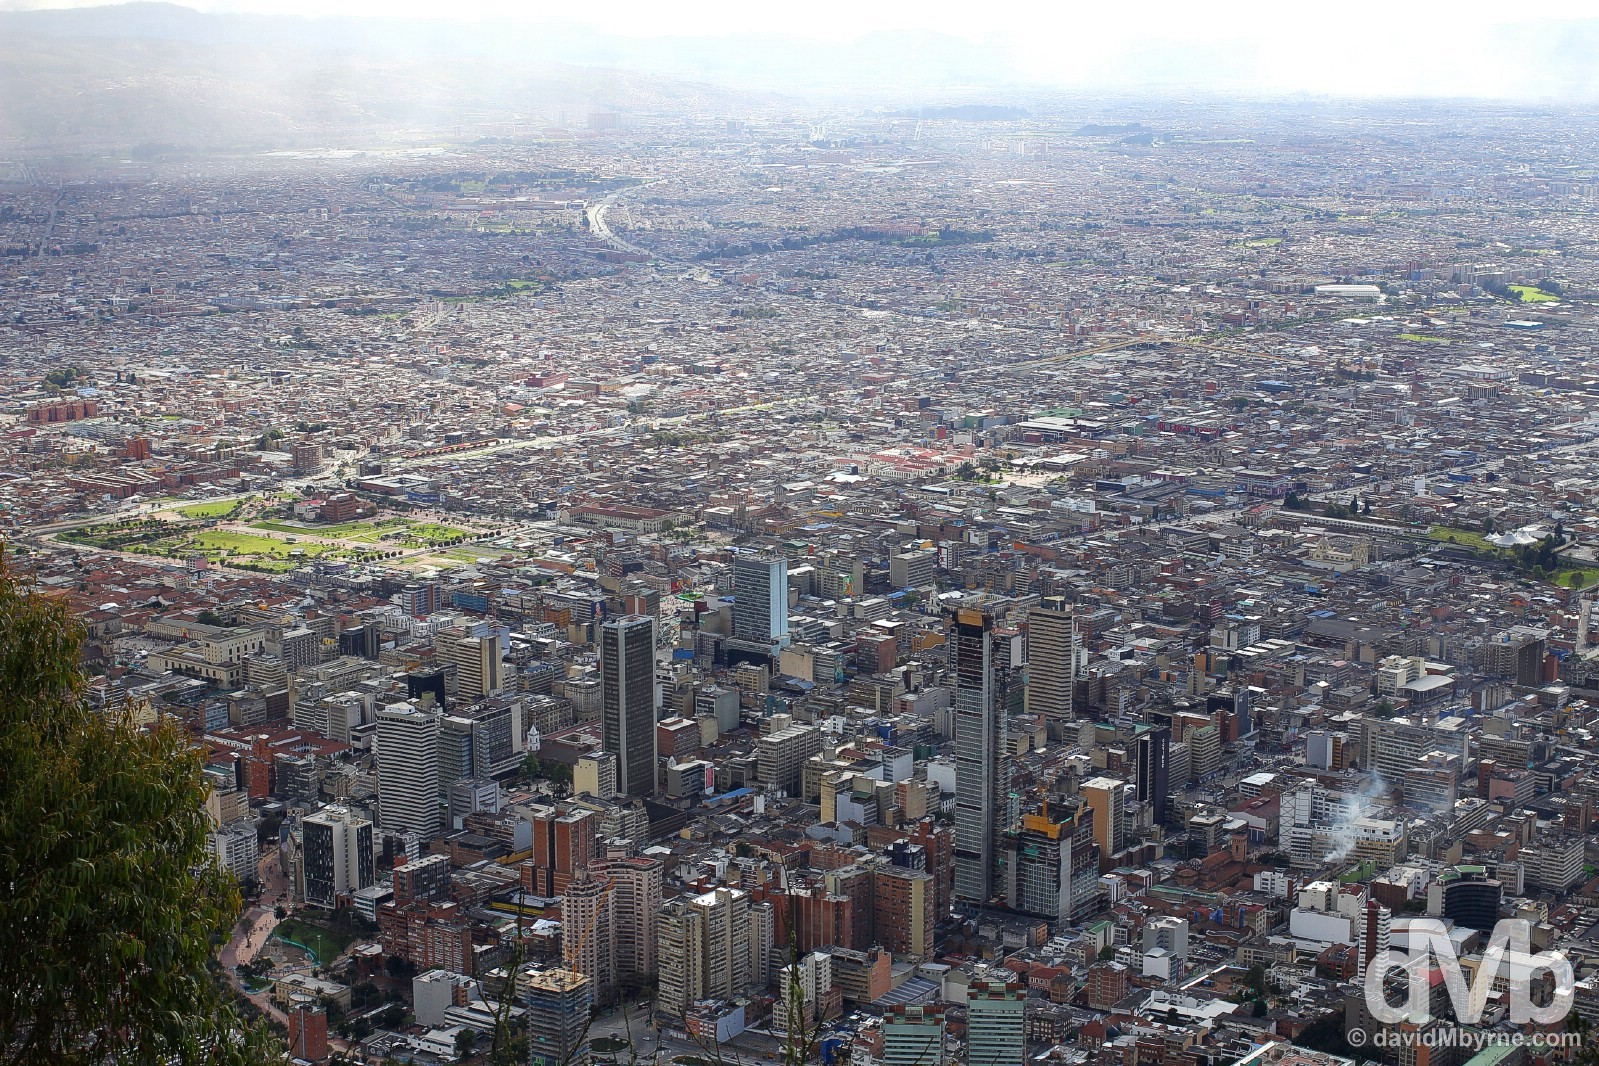 The city of Bogota as seen from Cerro de Monserrate overlooking the city. Bogota, Colombia. June 28, 2015.